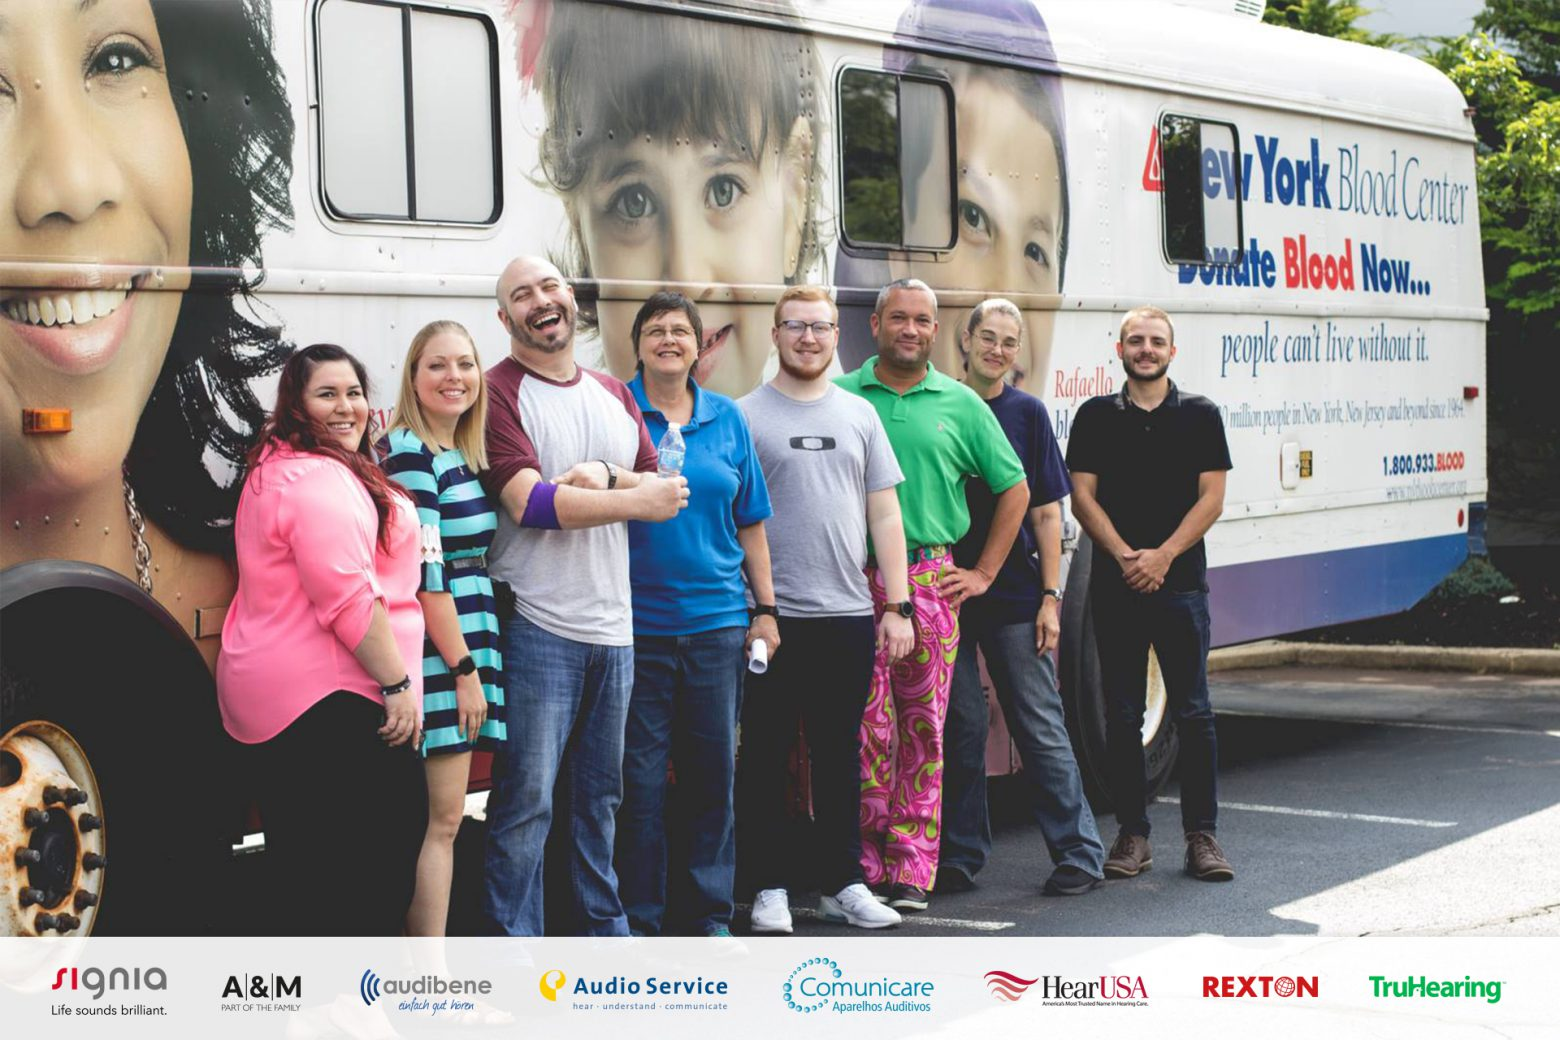 Sivantos employees in front of the truck from the New York Blood Center